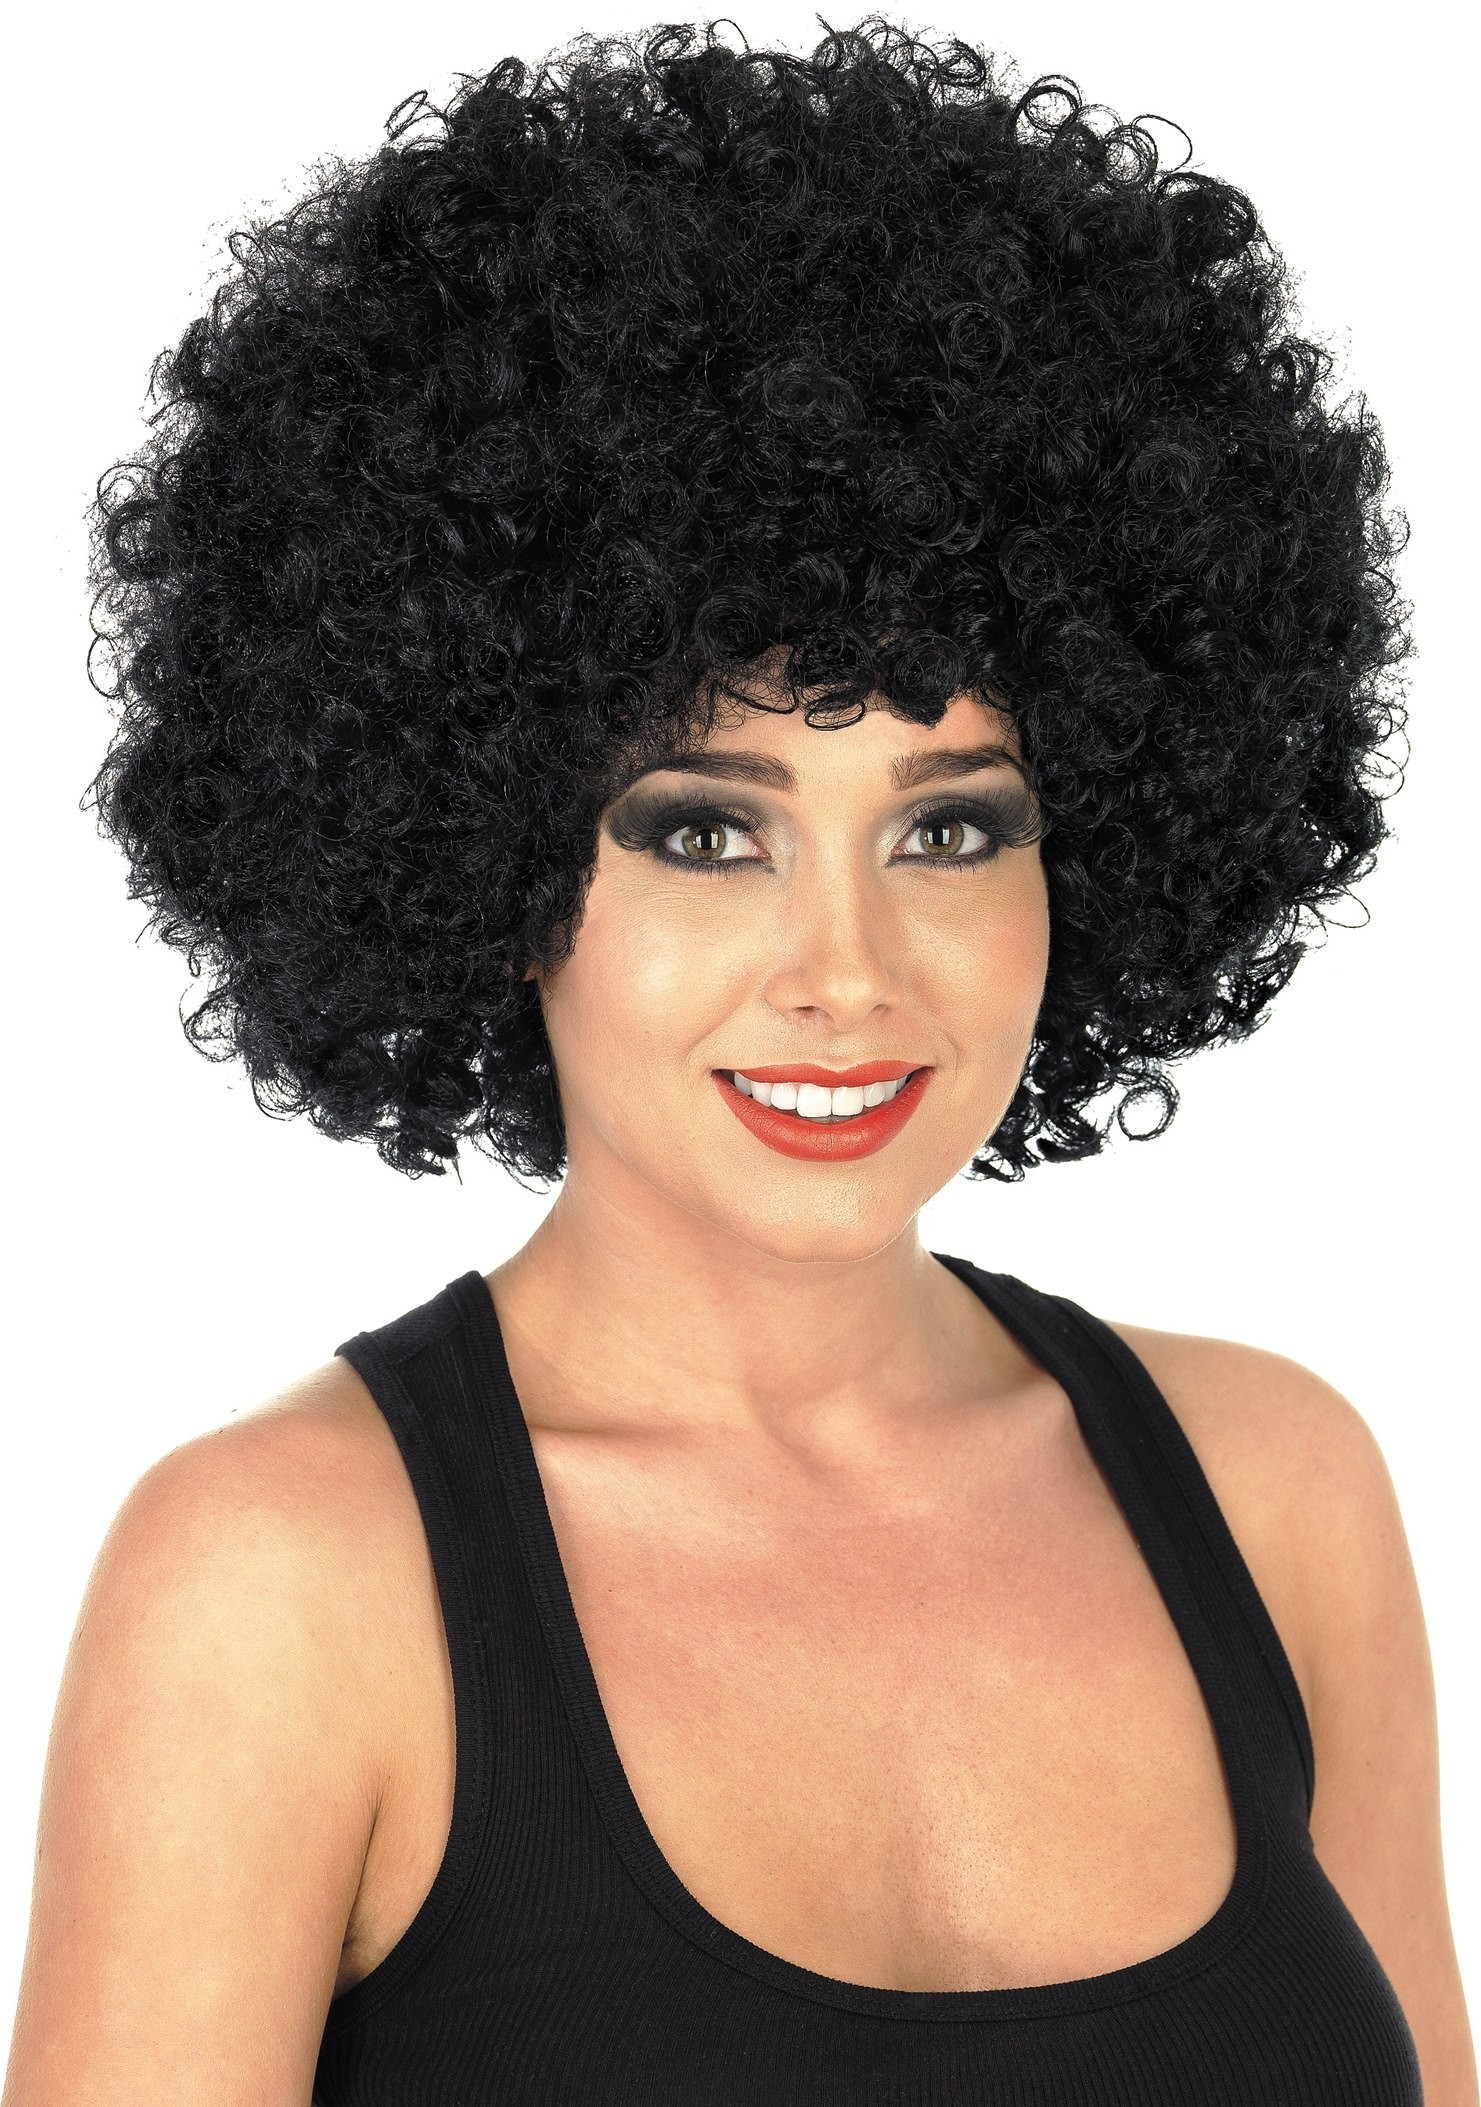 Black Afro Wig (1970S Fancy Dress Wigs)